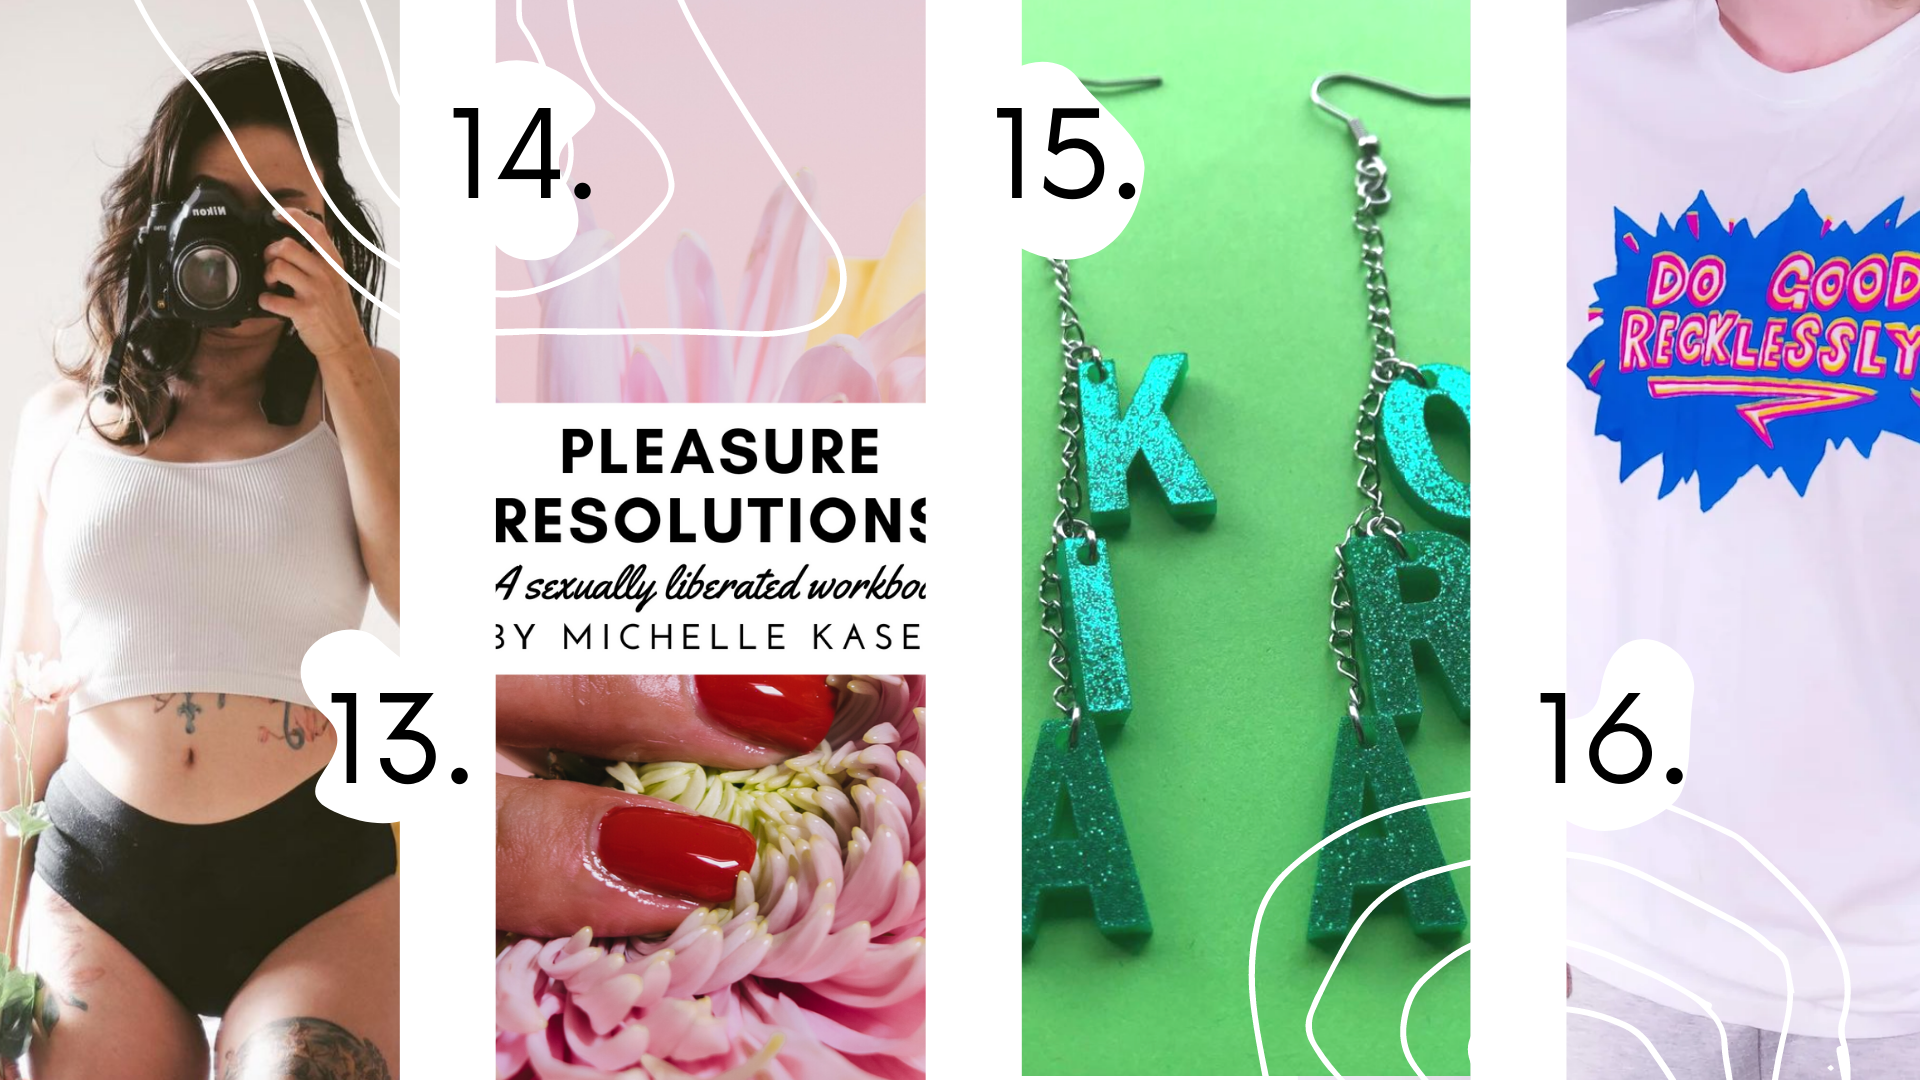 "13. Tashy in a white top and black undies taking their pictures in the mirror with a camera next to their face, 14. Cover of the pleasure resolutions ""a sexually liberated workbook"" by Michelle Kasey with flower touched by a hand with red-painted nails, 15. Green earrings with words that say Kia Ora on the green background, 16. White T-shirt saying Do Good Recklessly"